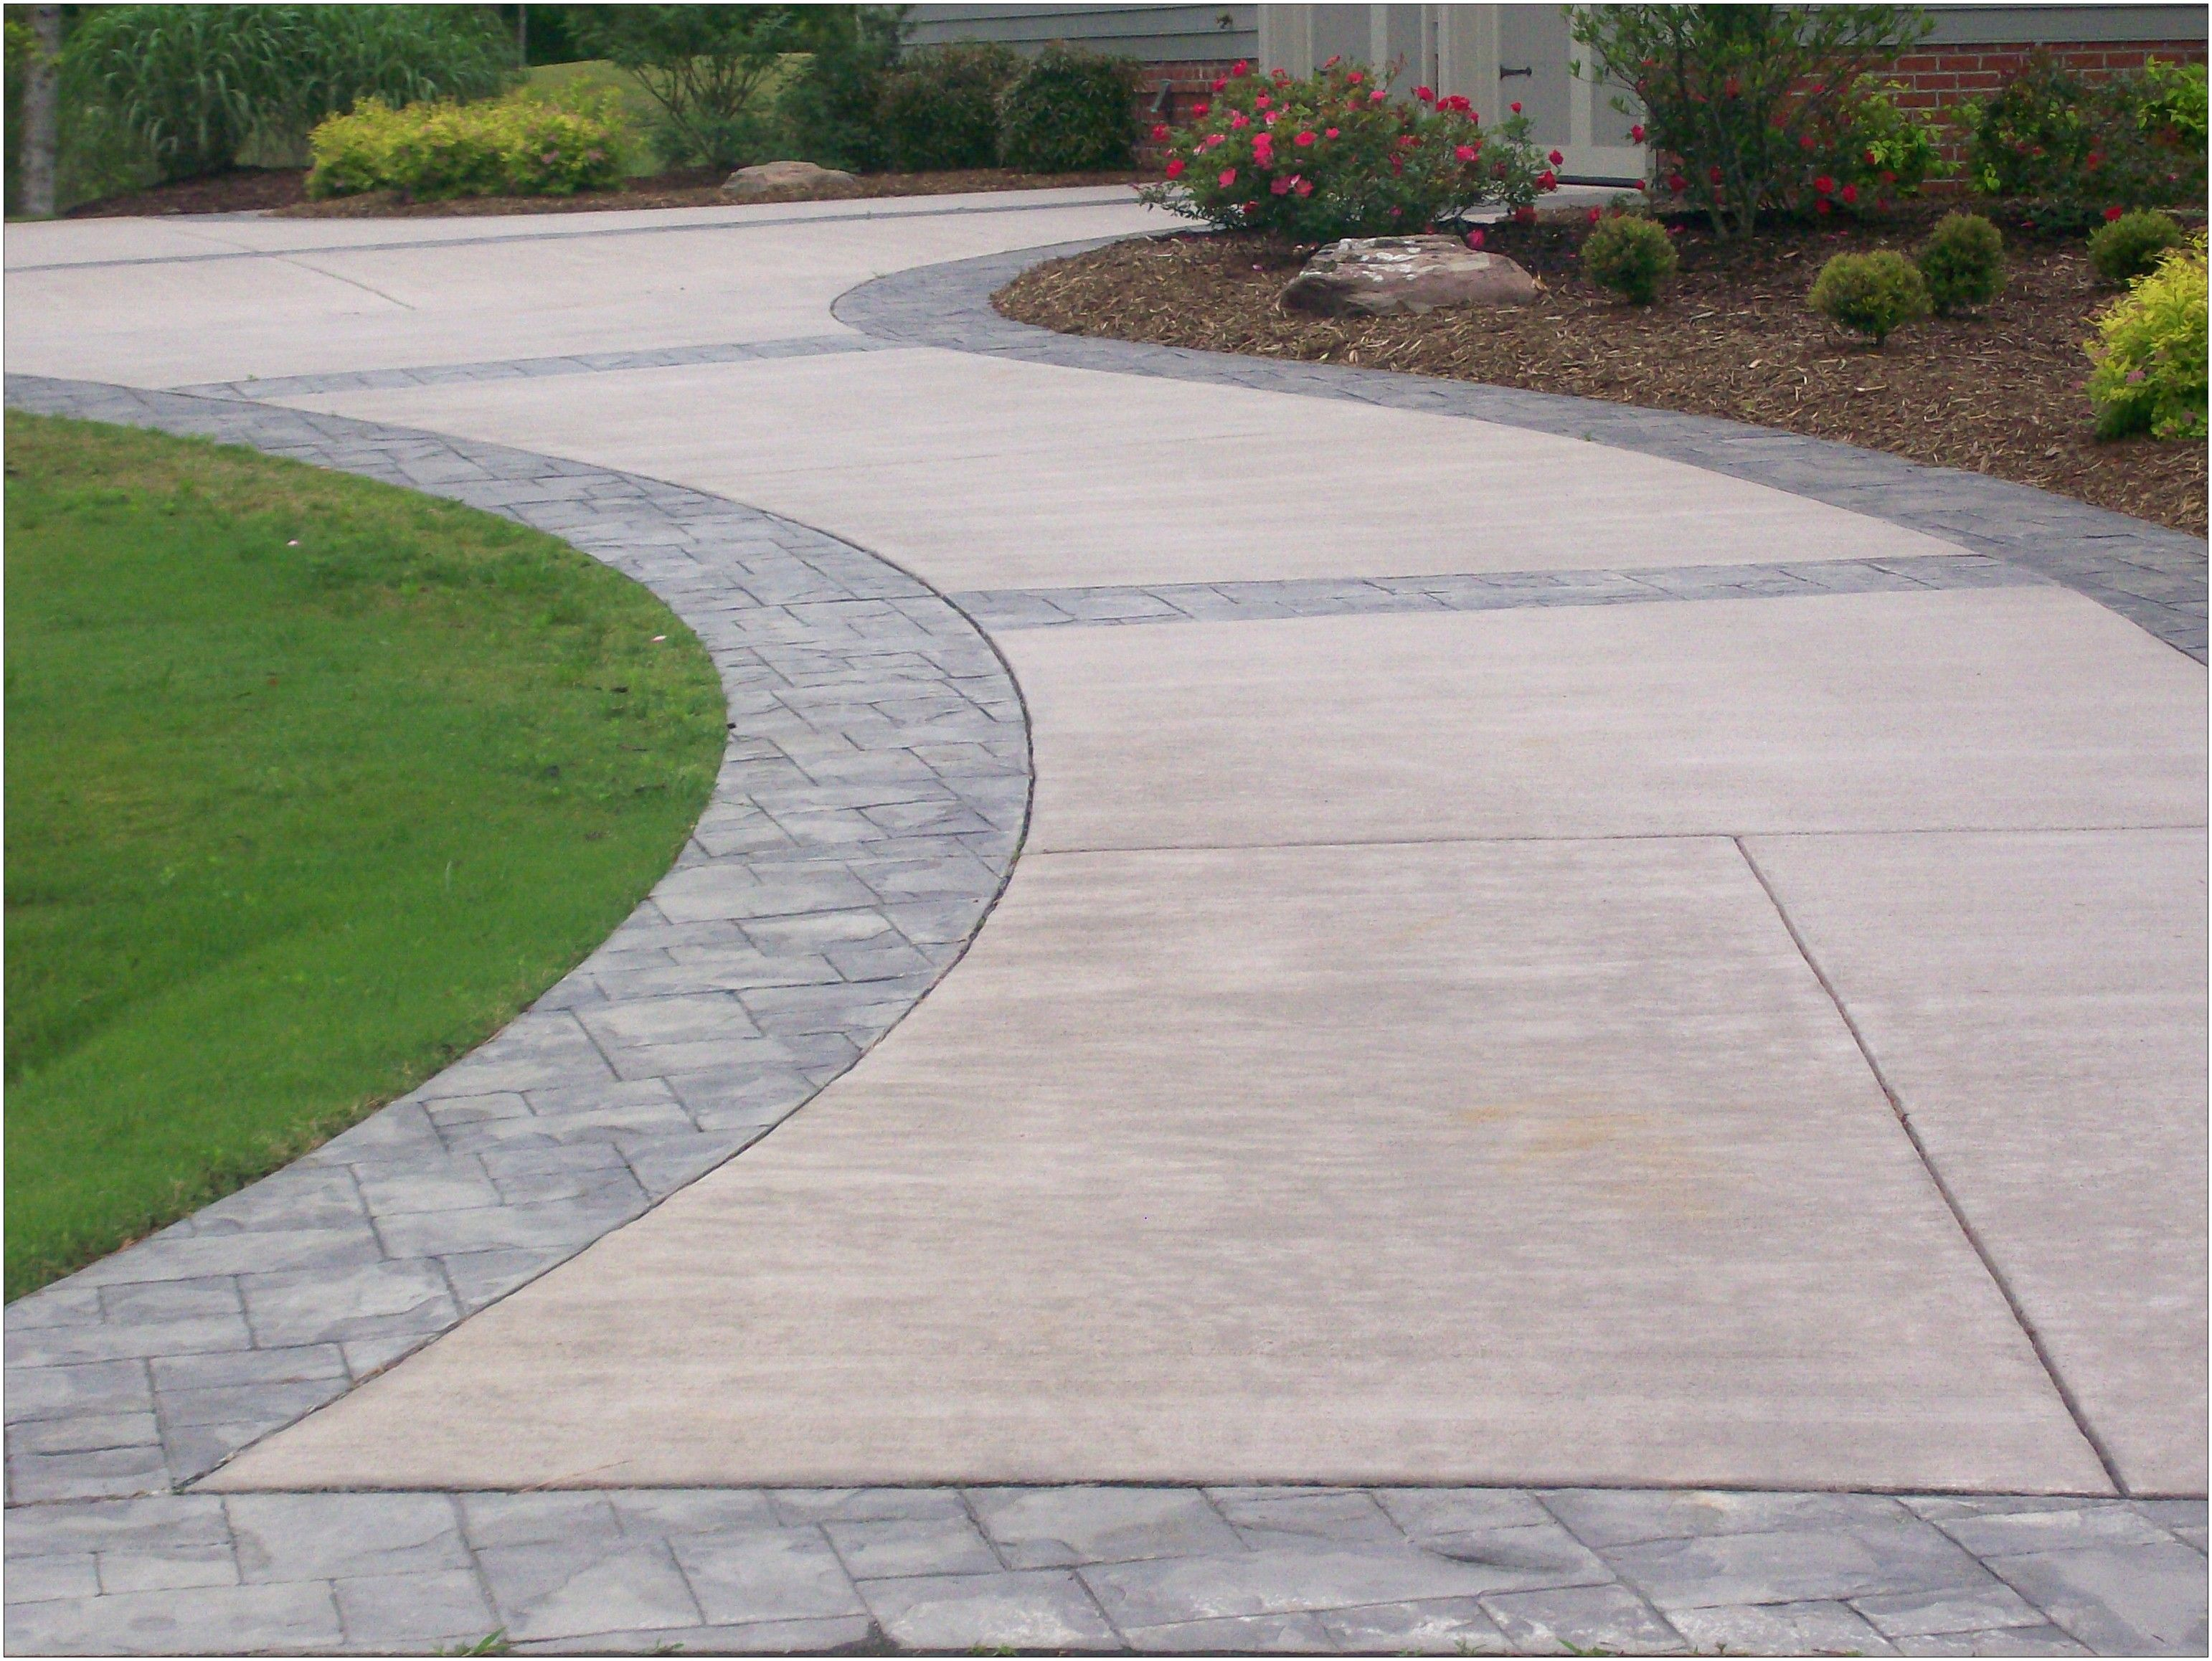 Pin by Pam Anders on Concrete projects | Pinterest | Google images ...